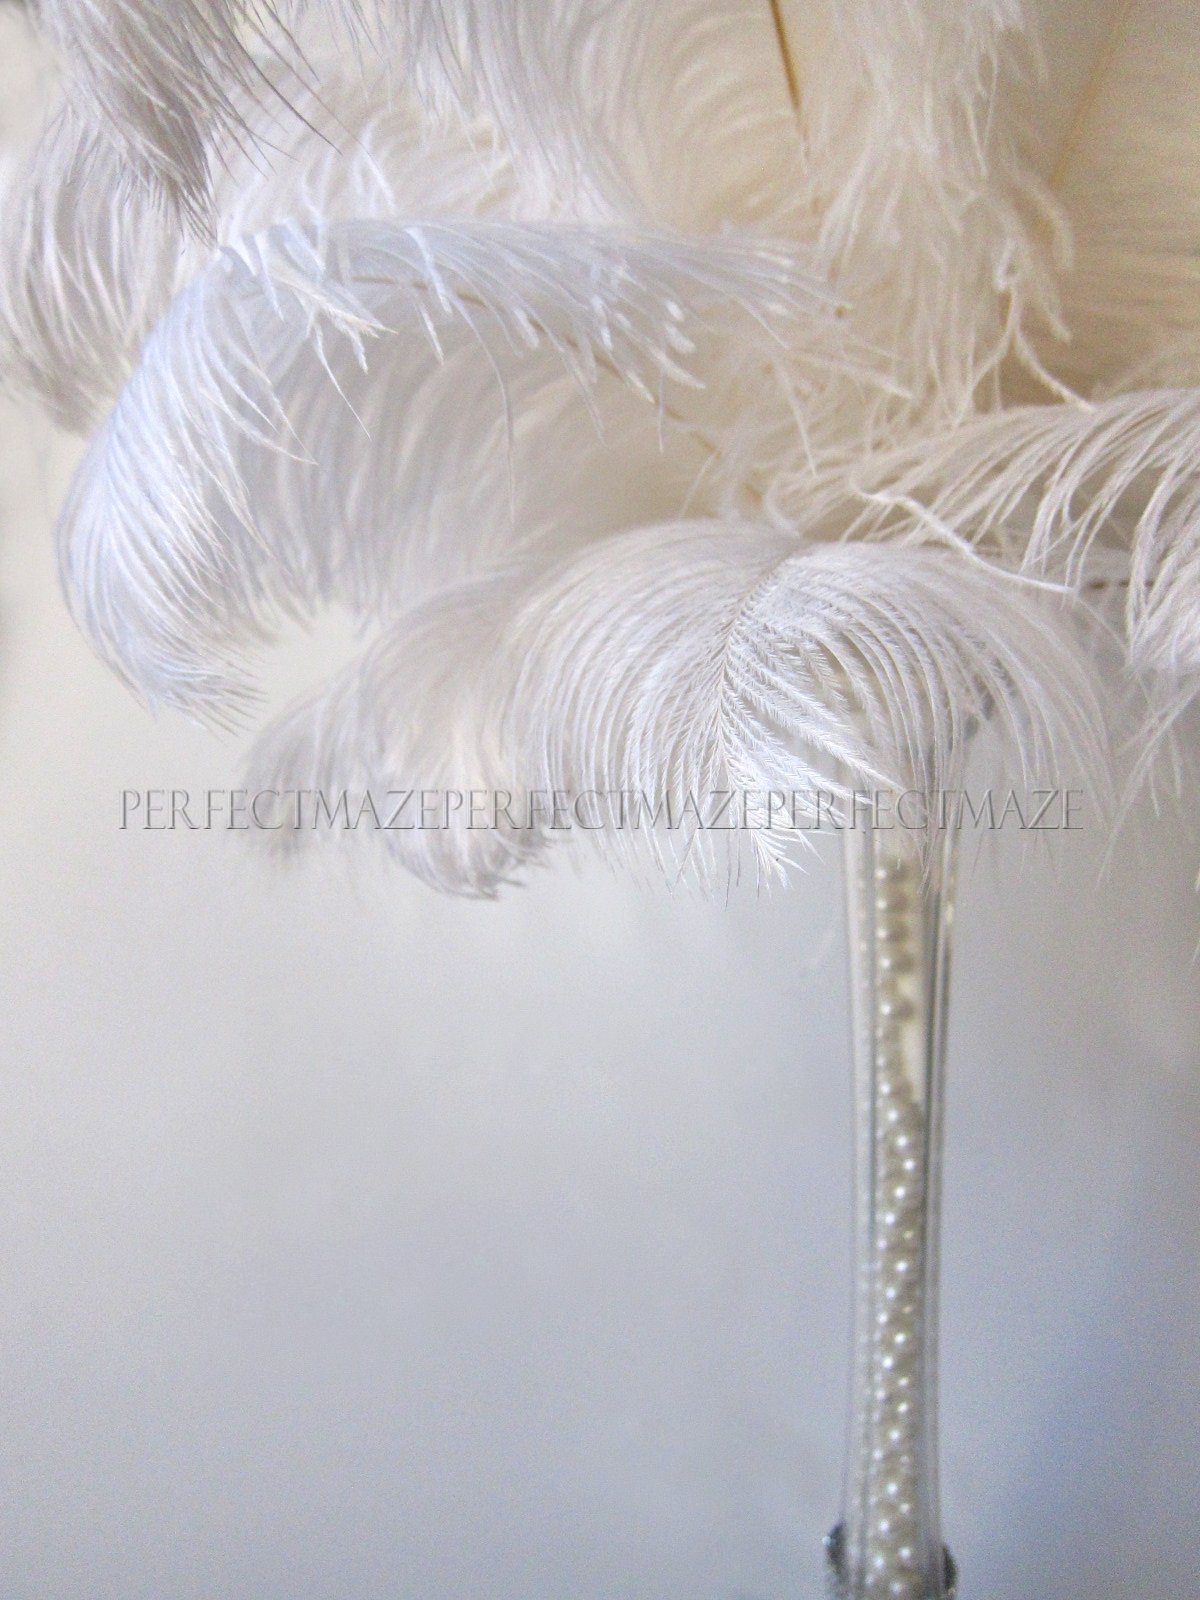 Perfectmaze 16''-18'' Ostrich Feather Premium Quality for Wedding Party Centerpiece Vase Decoration (50)